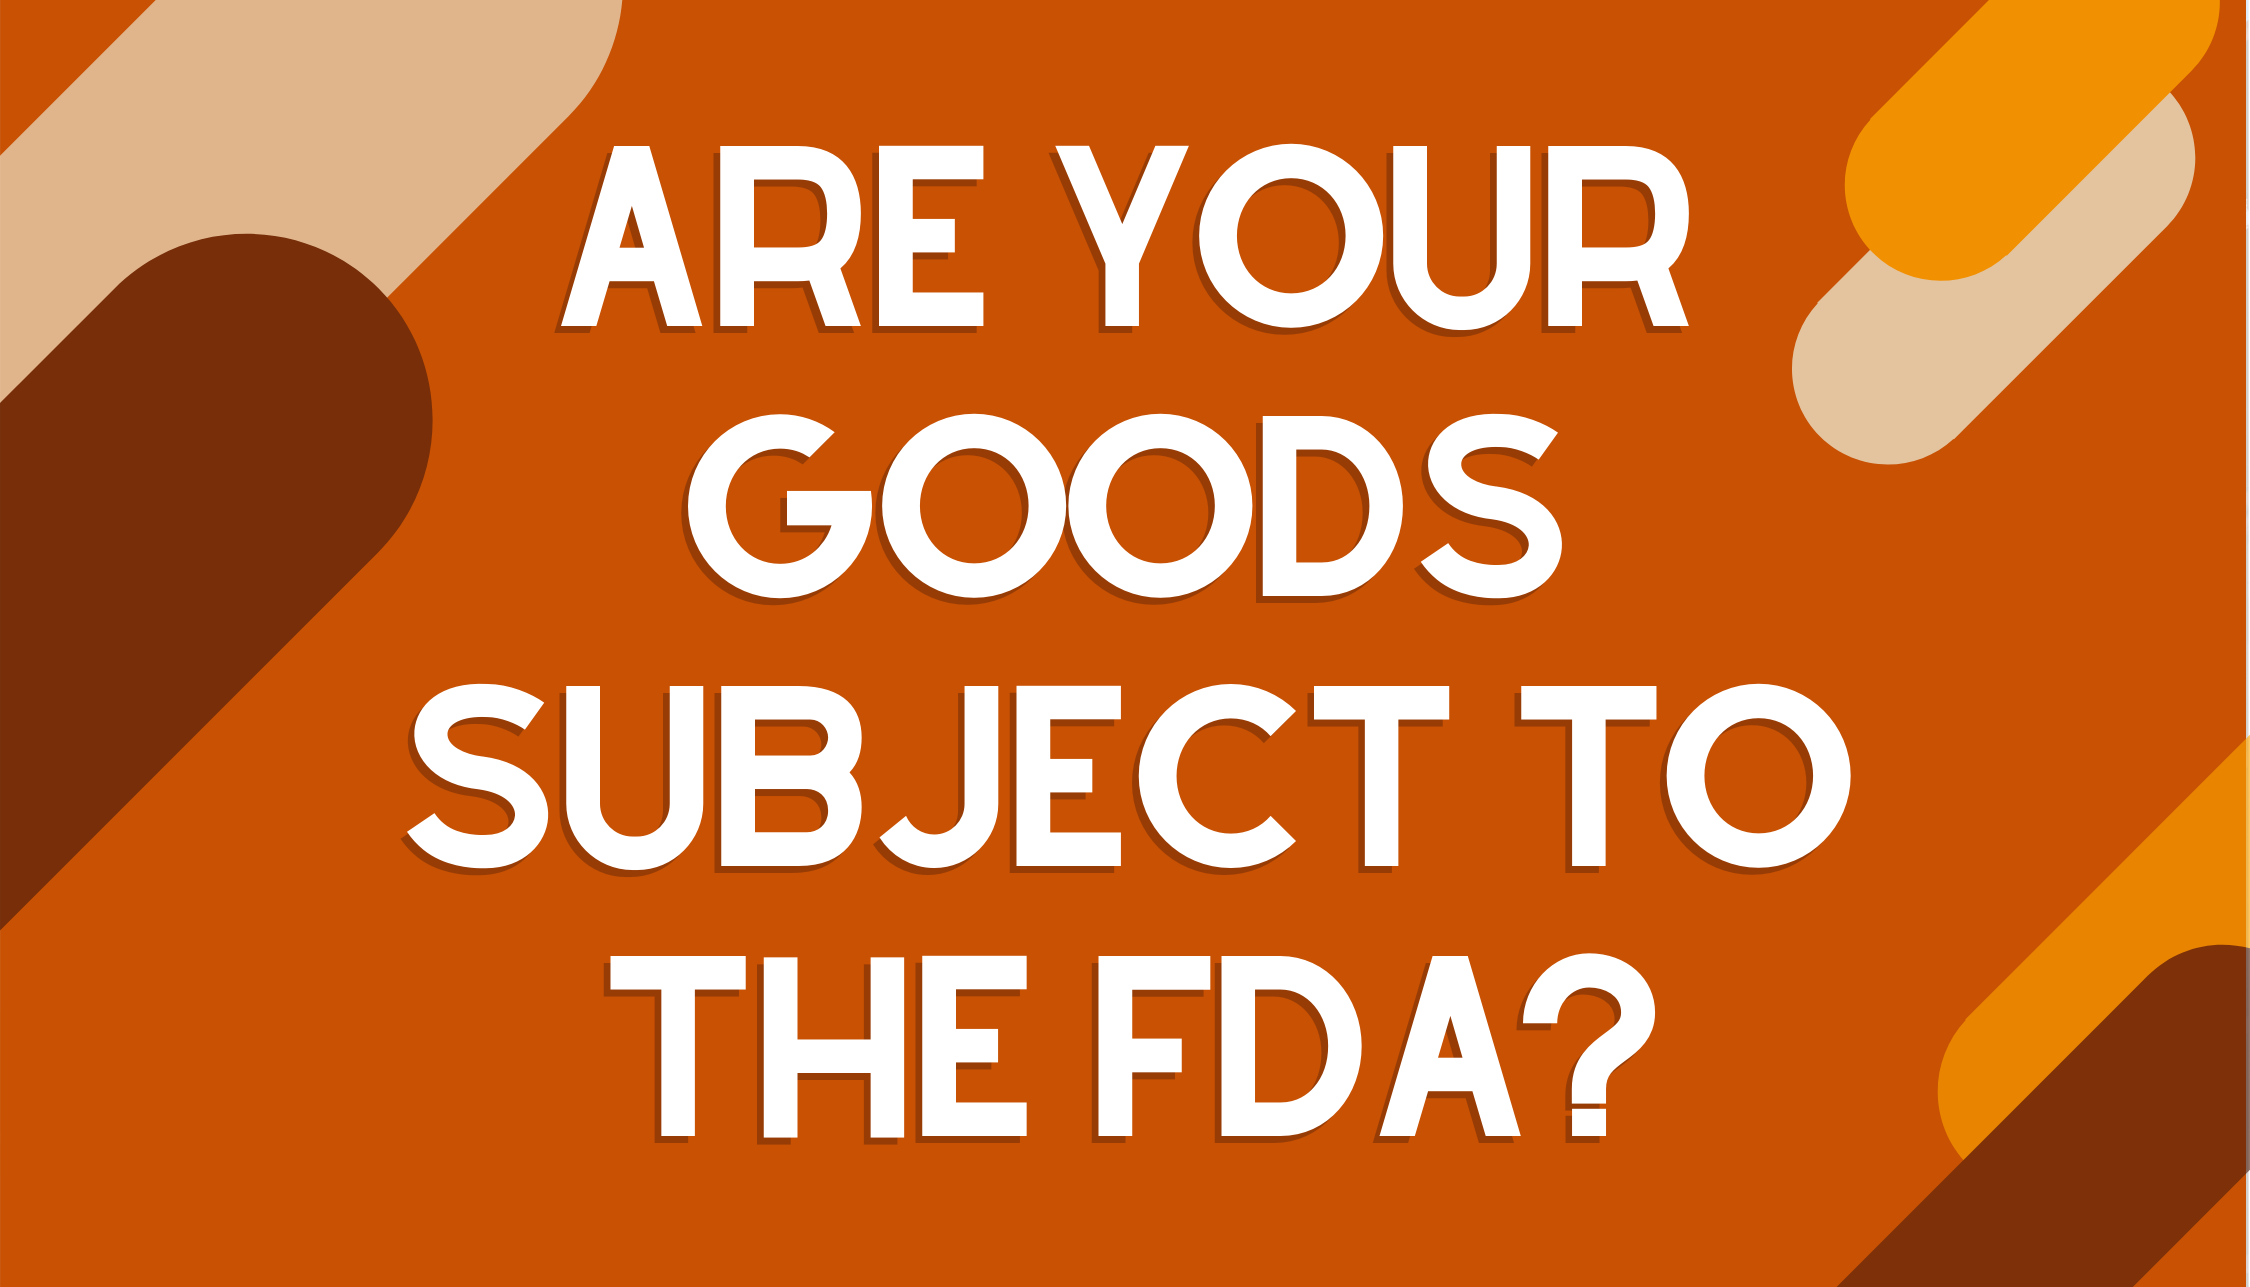 Are Your Goods Subject to the FDA?